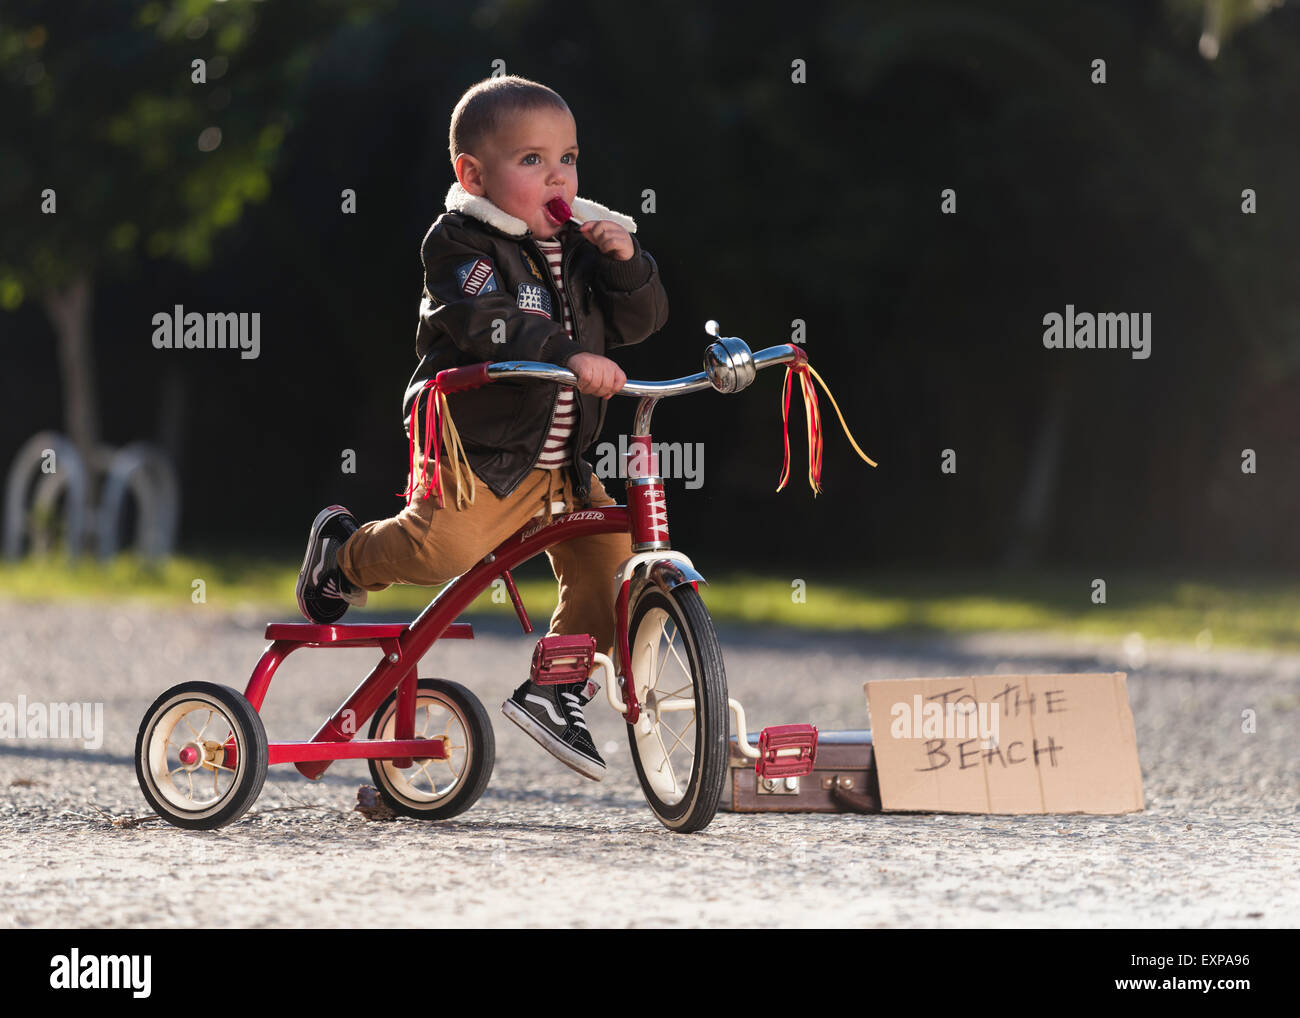 Young boy on his bicycle. - Stock Image